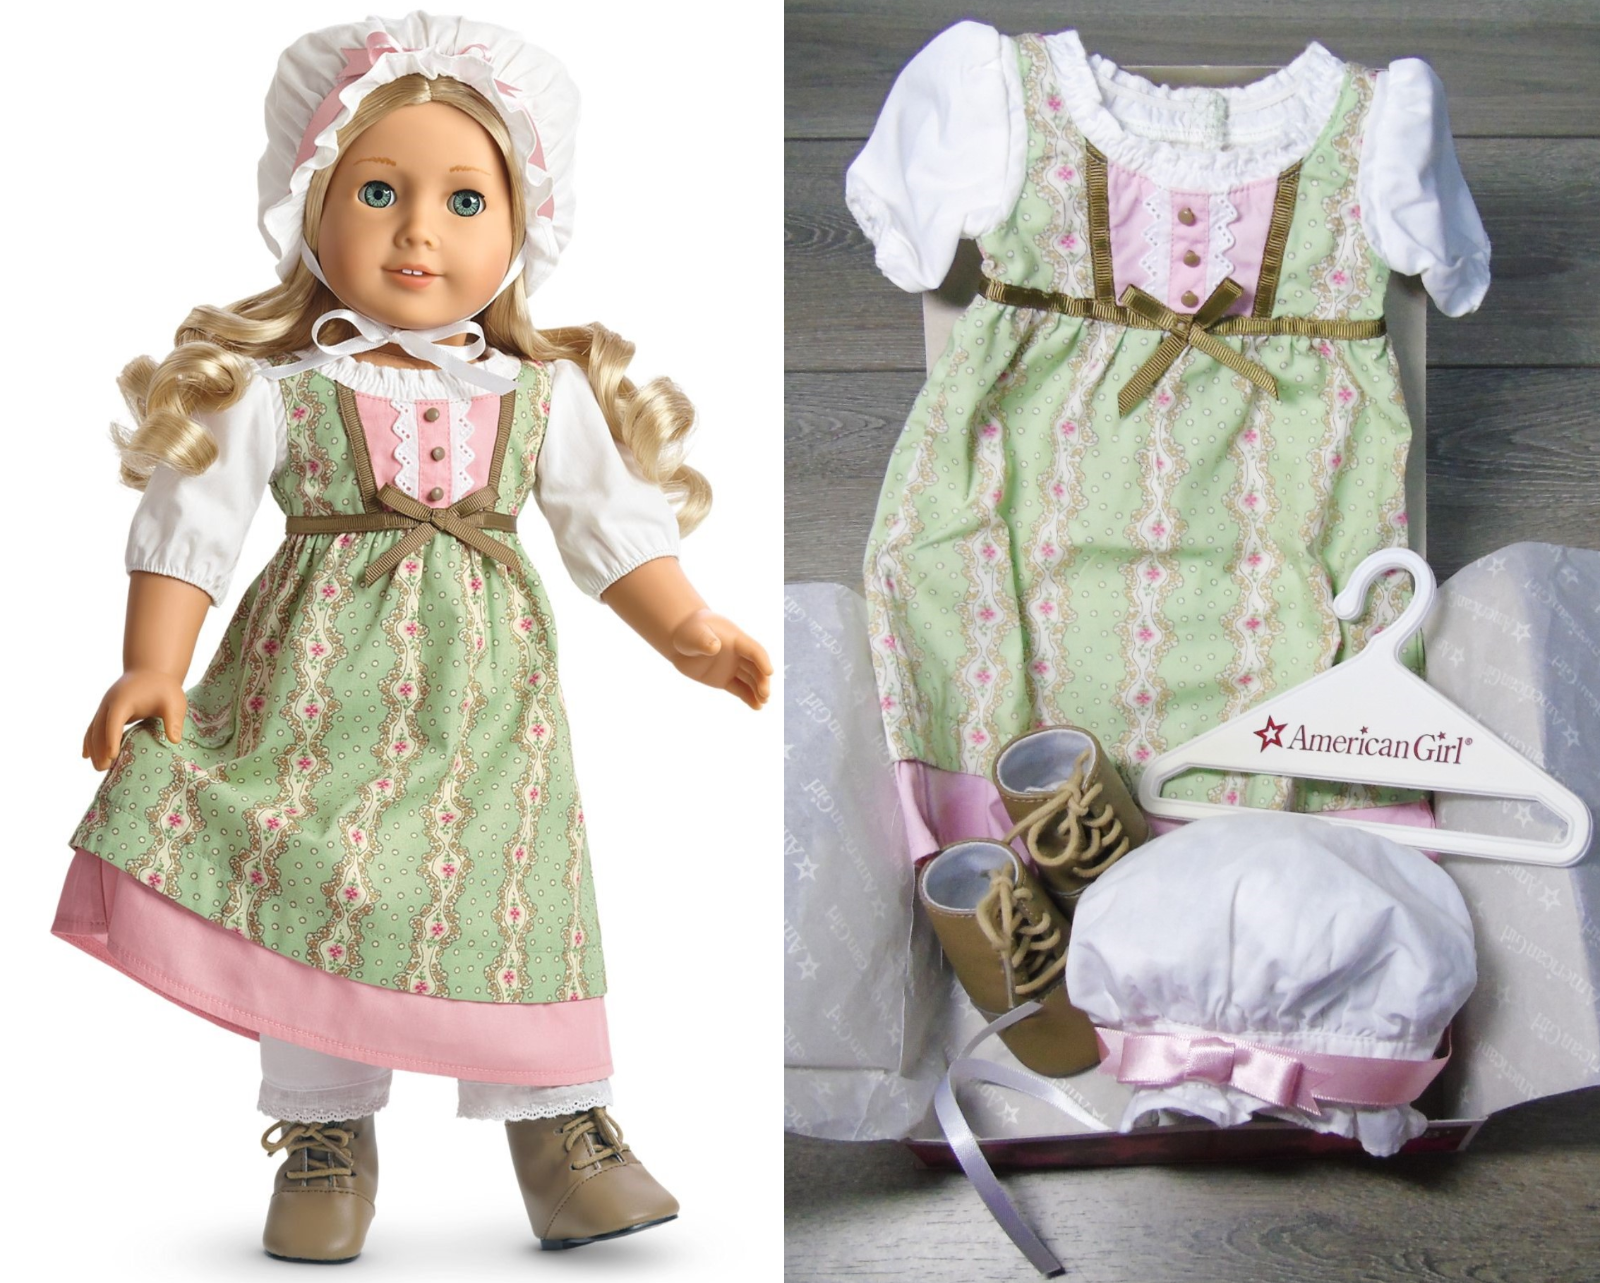 American Girl 18   Puppe KLEIDUNG Caroline Arbeit Kleid Outfit Stiefel Kappe